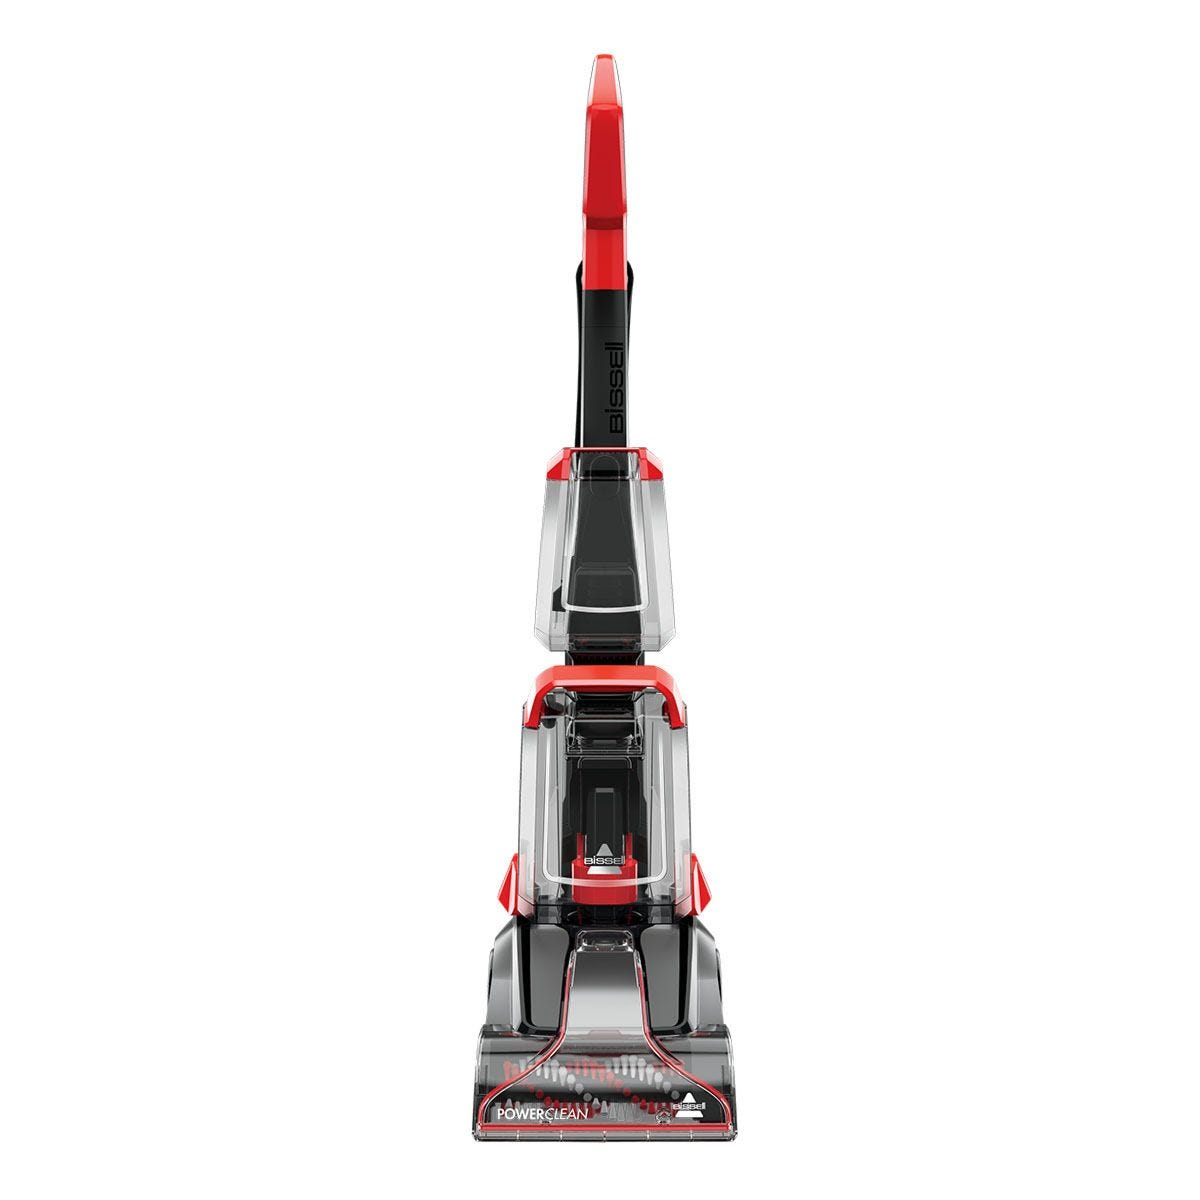 BISSELL 2889E Powerclean Carpet Cleaner - Titanium & Manbo Red